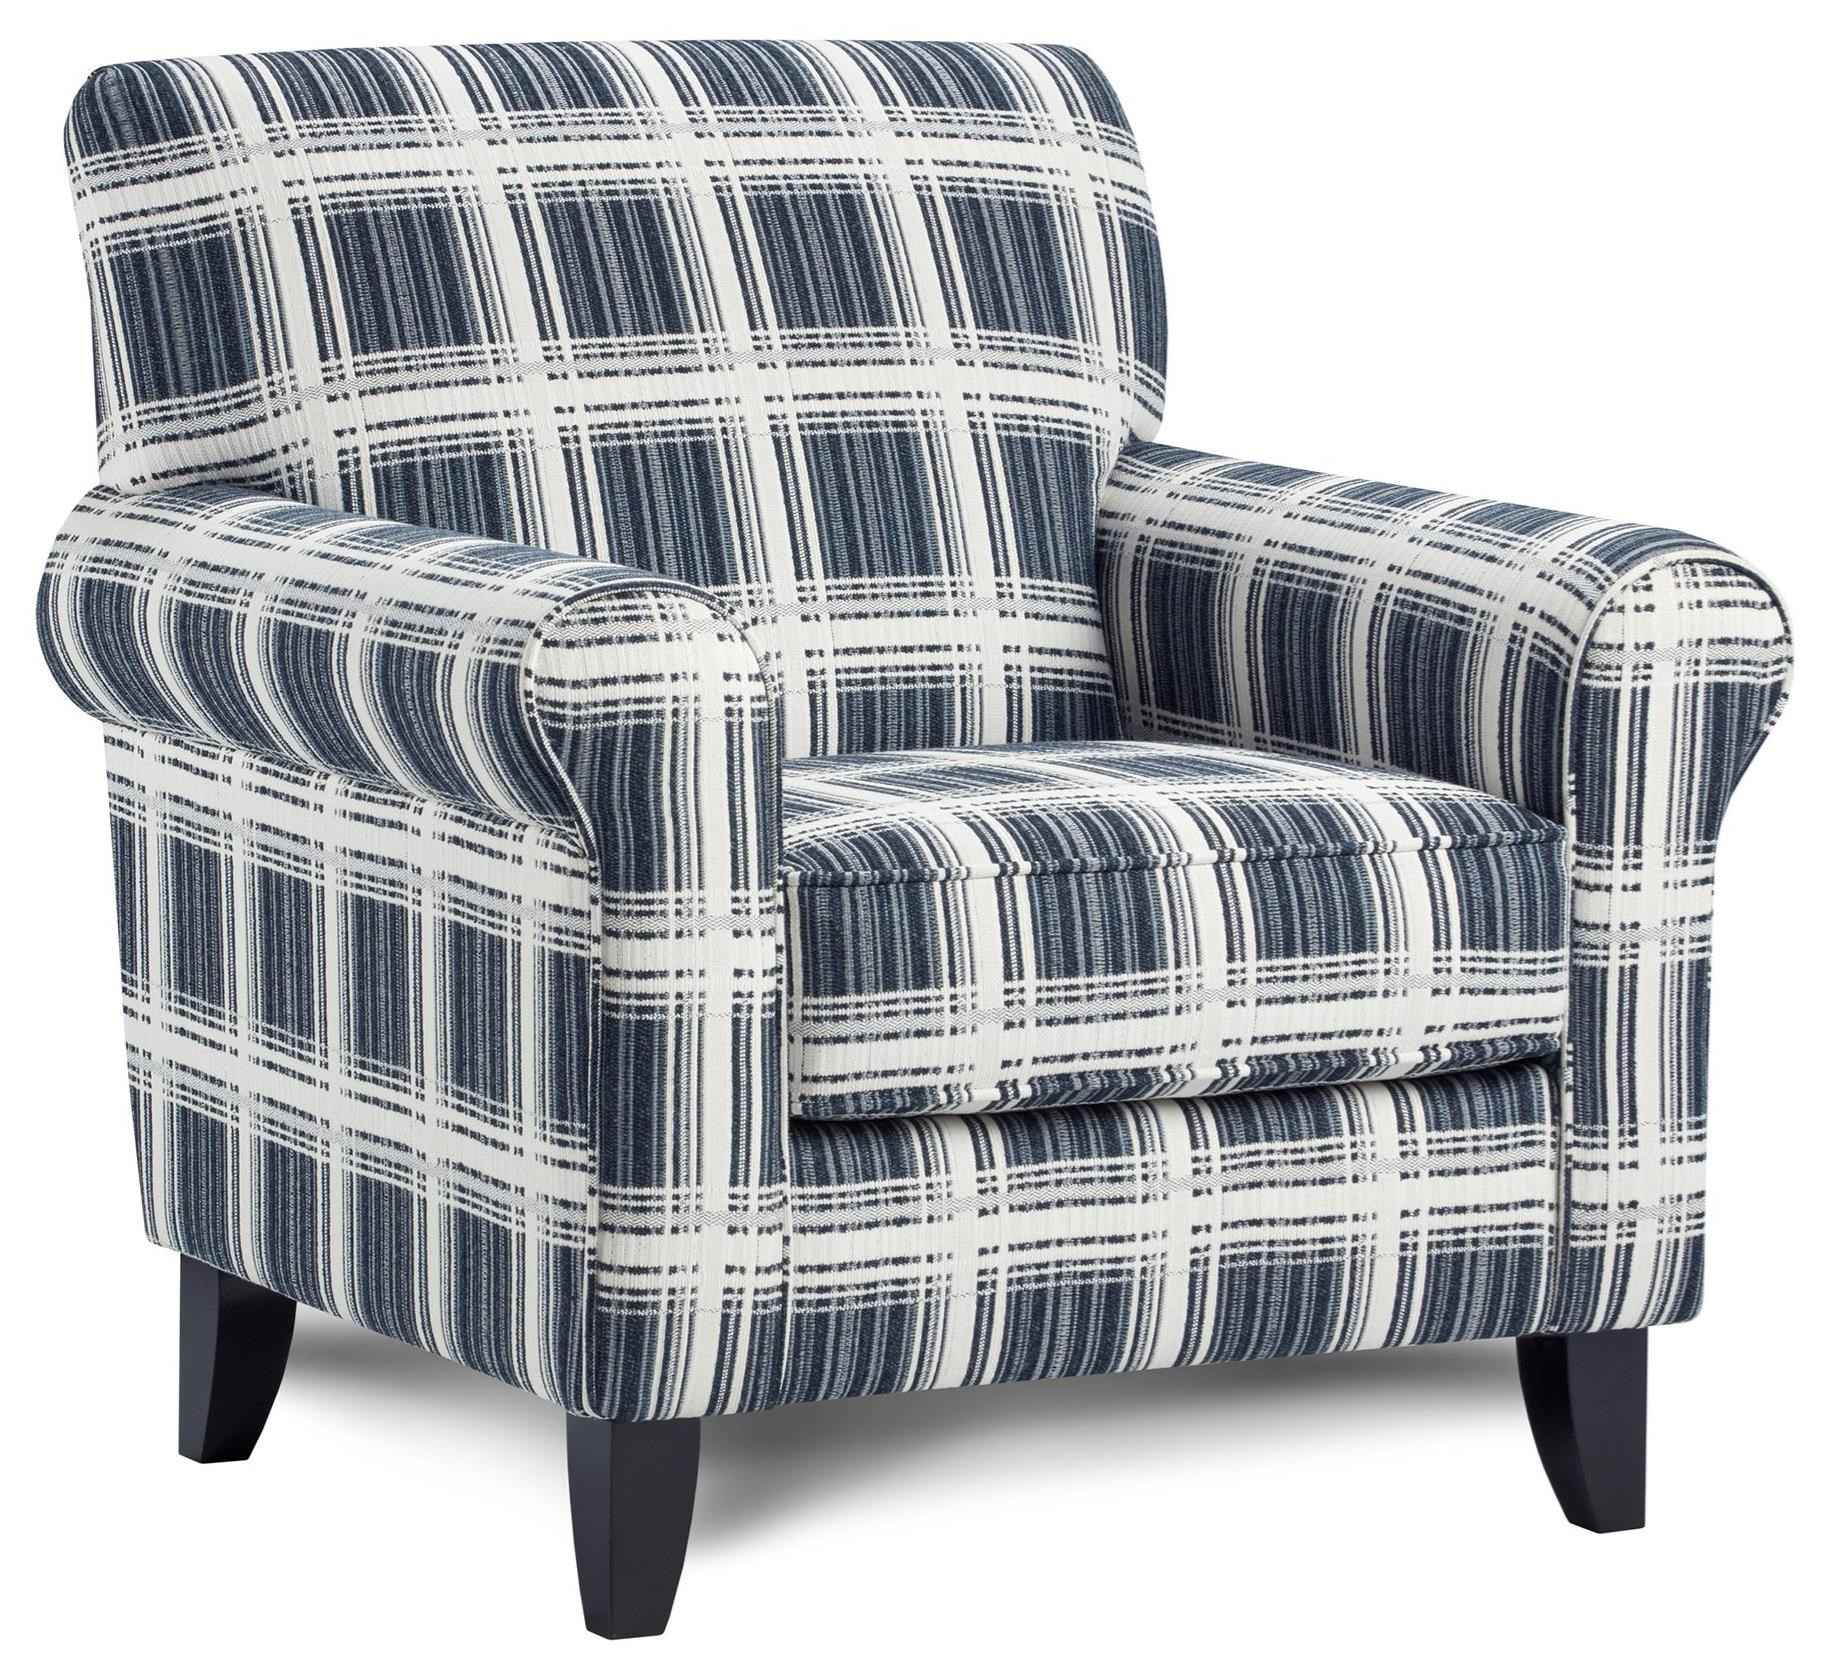 512 Accent Chair by Fusion Furniture at Prime Brothers Furniture